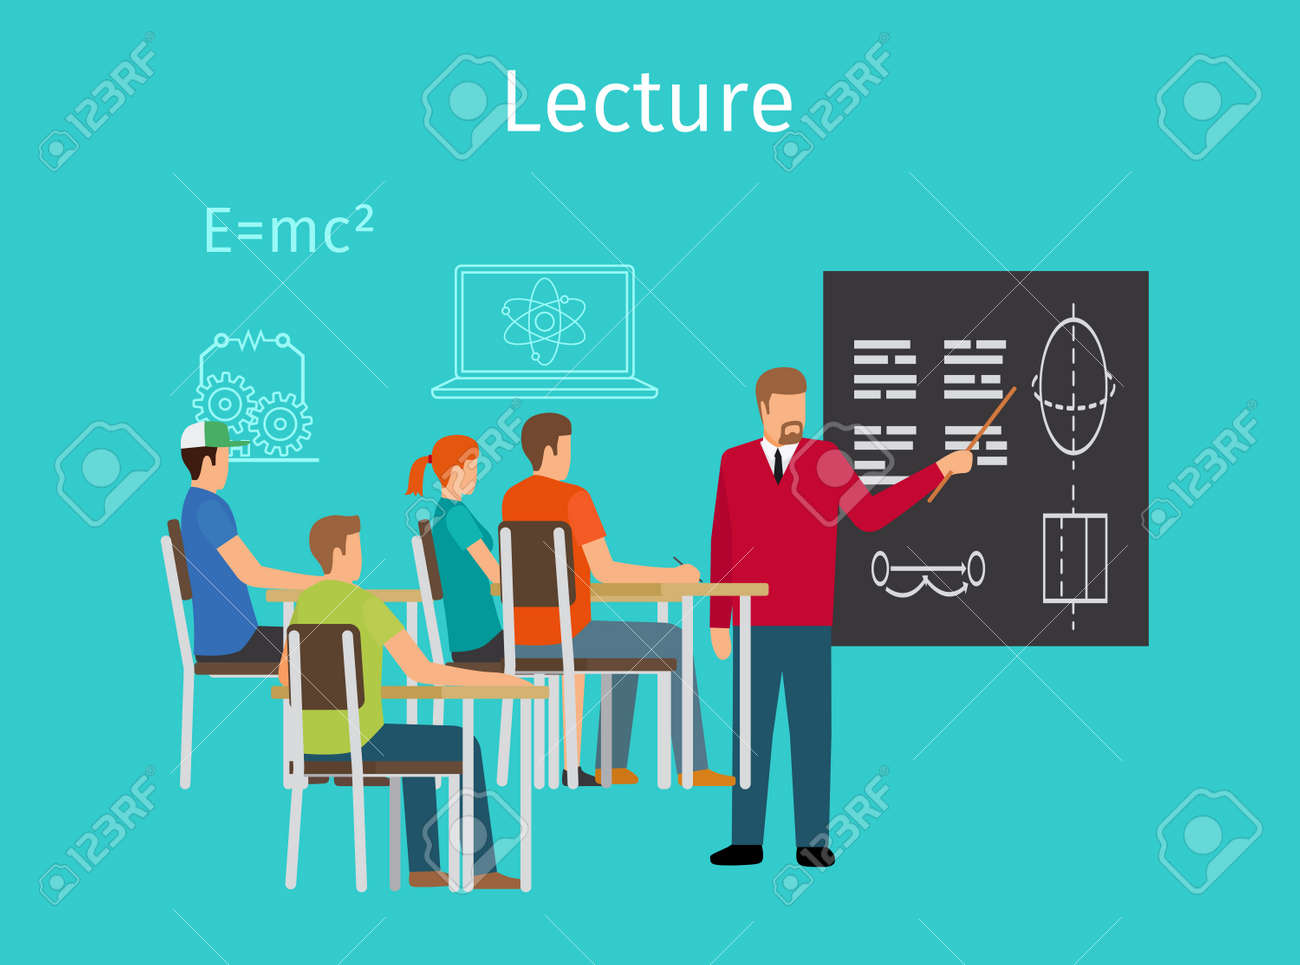 Education concept learning and lectures vector illustration - 166011963